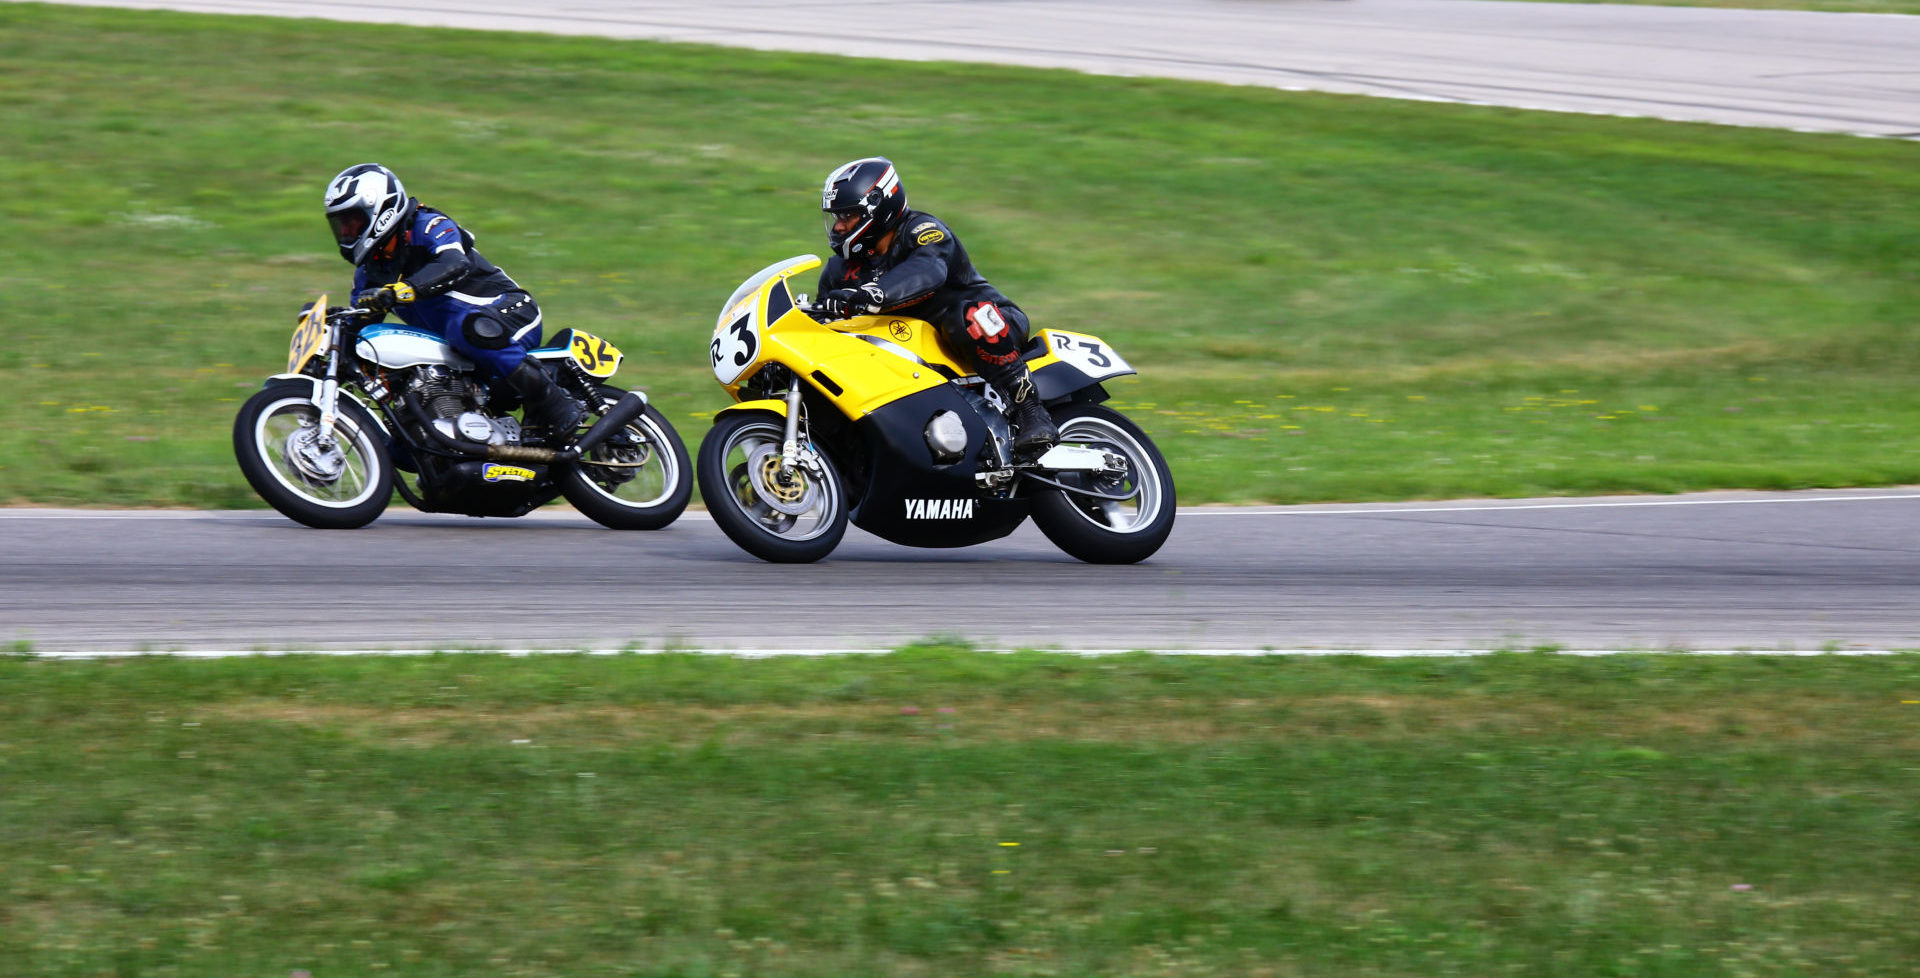 AHRMA racers David Felpel (32X) and Rick Richter (R3) in action at Gingerman Raceway. Photo by Jack Lahrman, courtesy AHRMA.